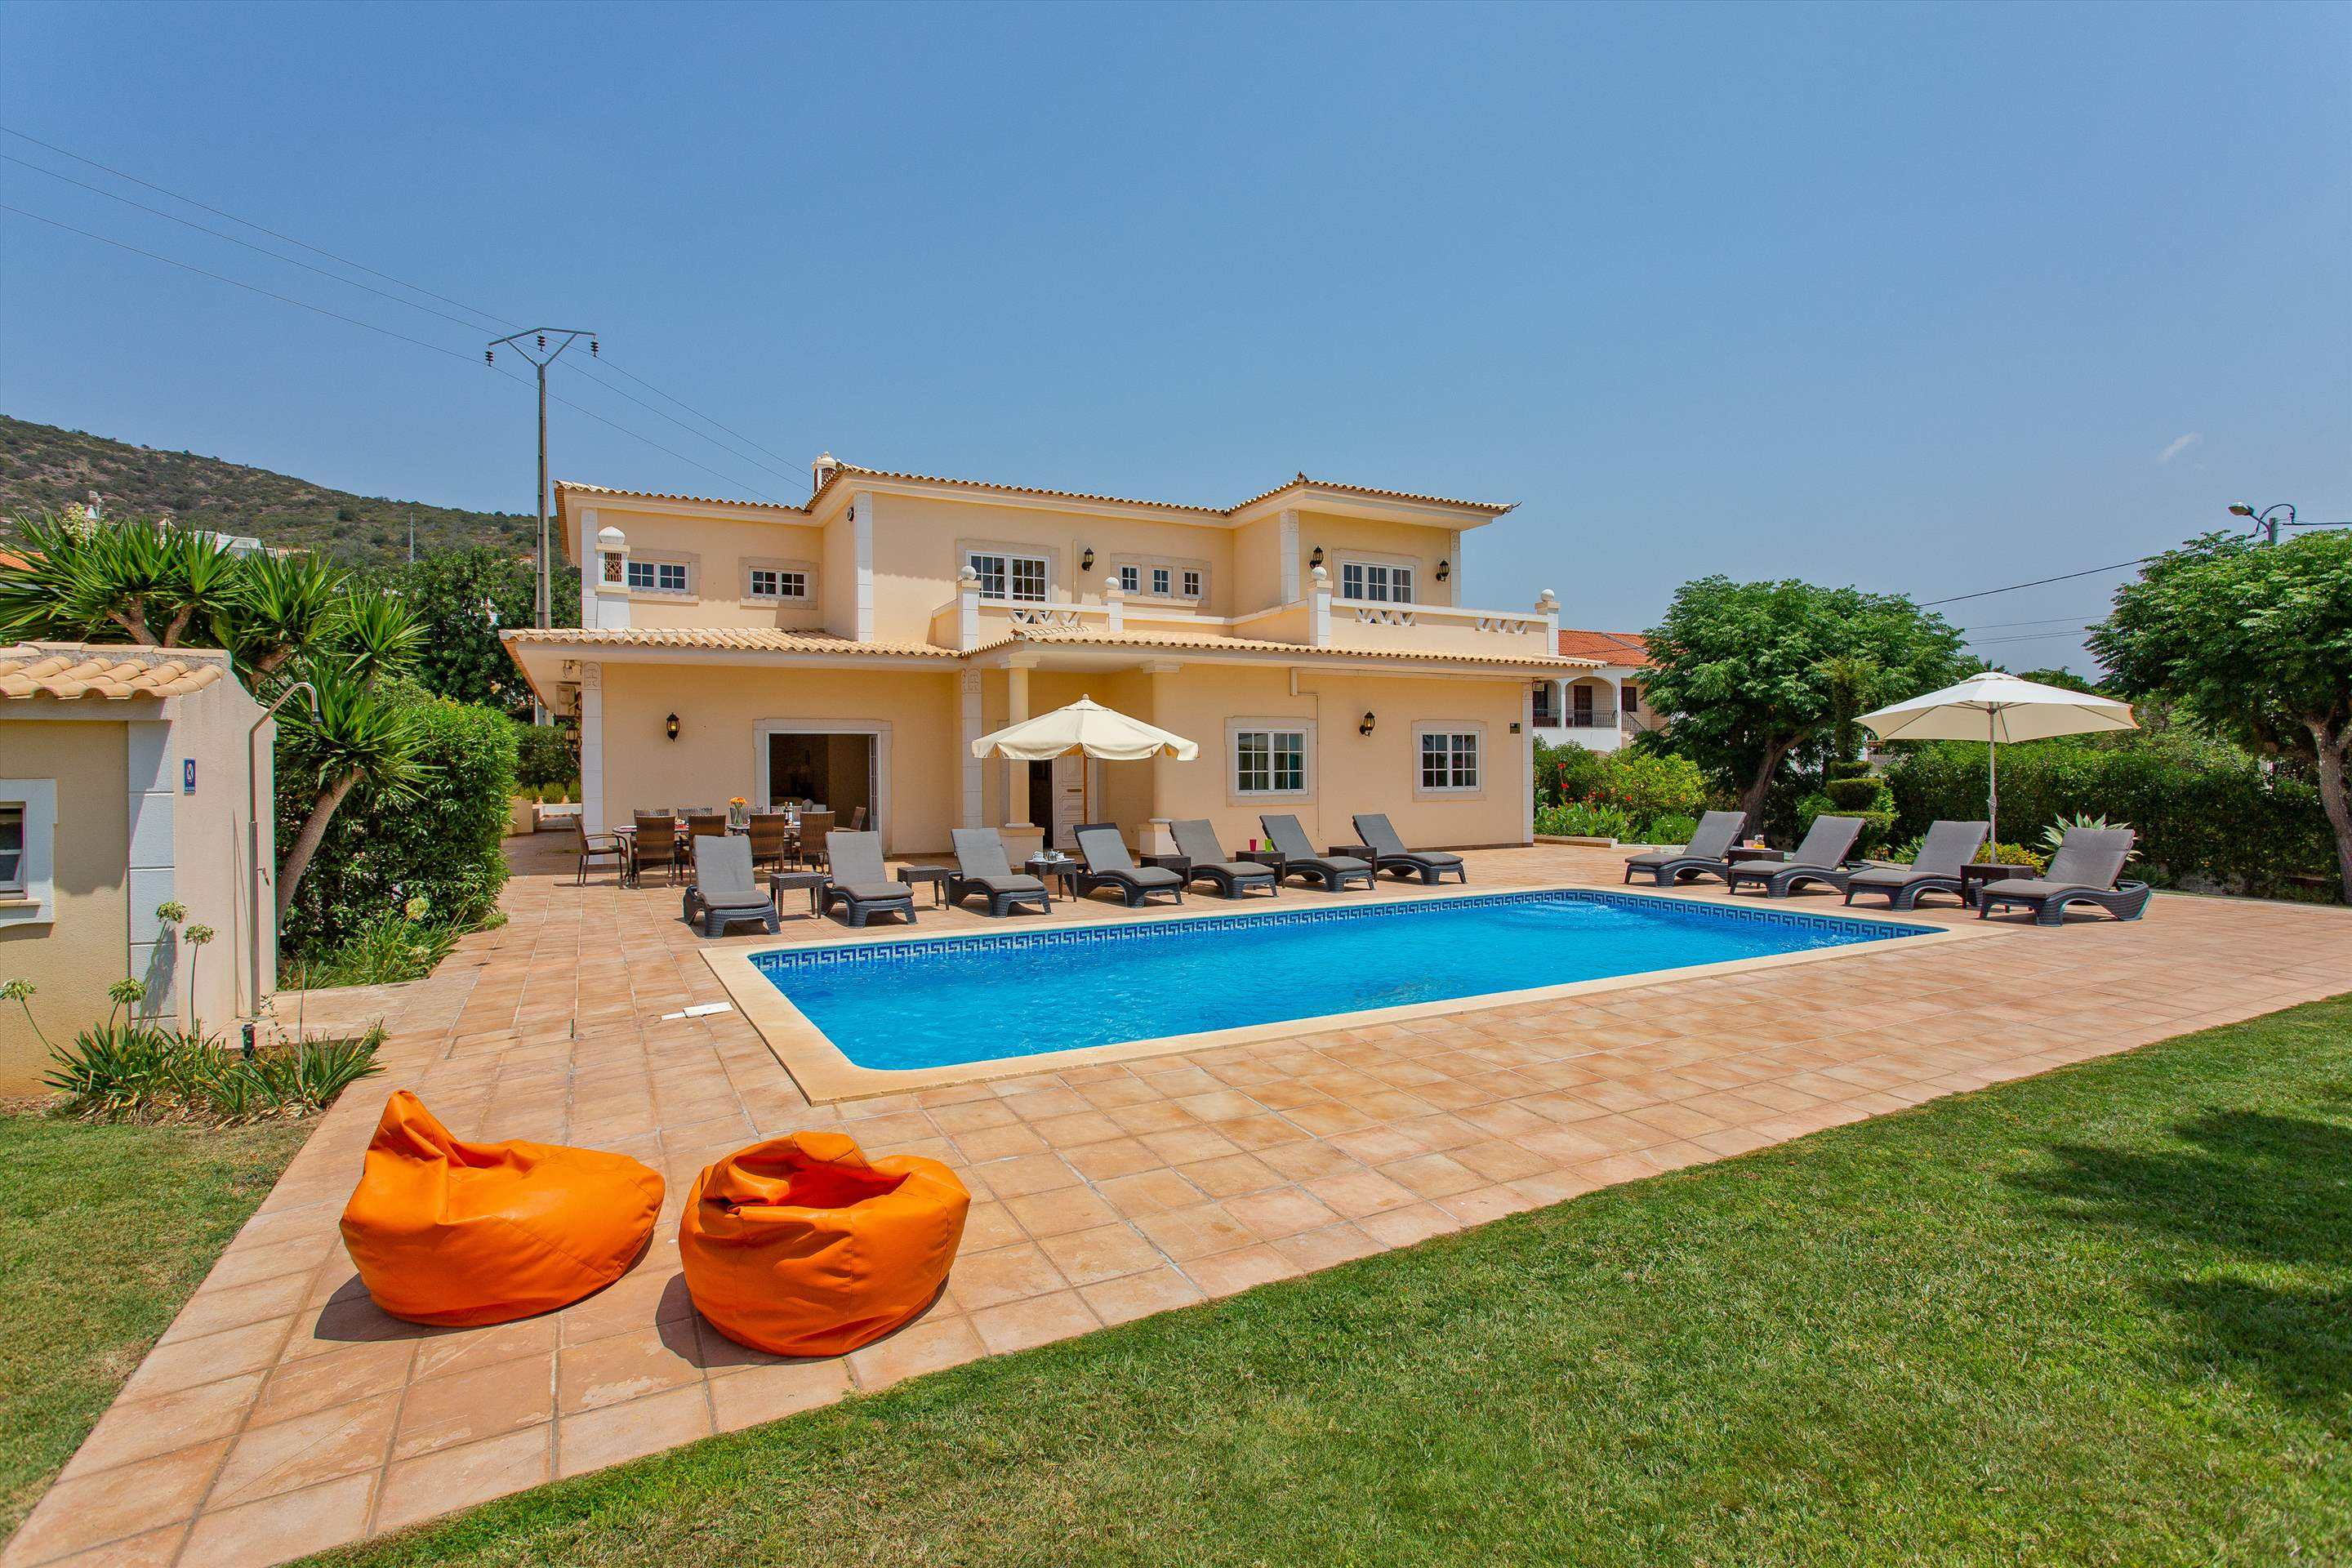 Quinta do Bruno, Eight Bedroom Rate including annexes, 8 bedroom villa in Vilamoura Area, Algarve